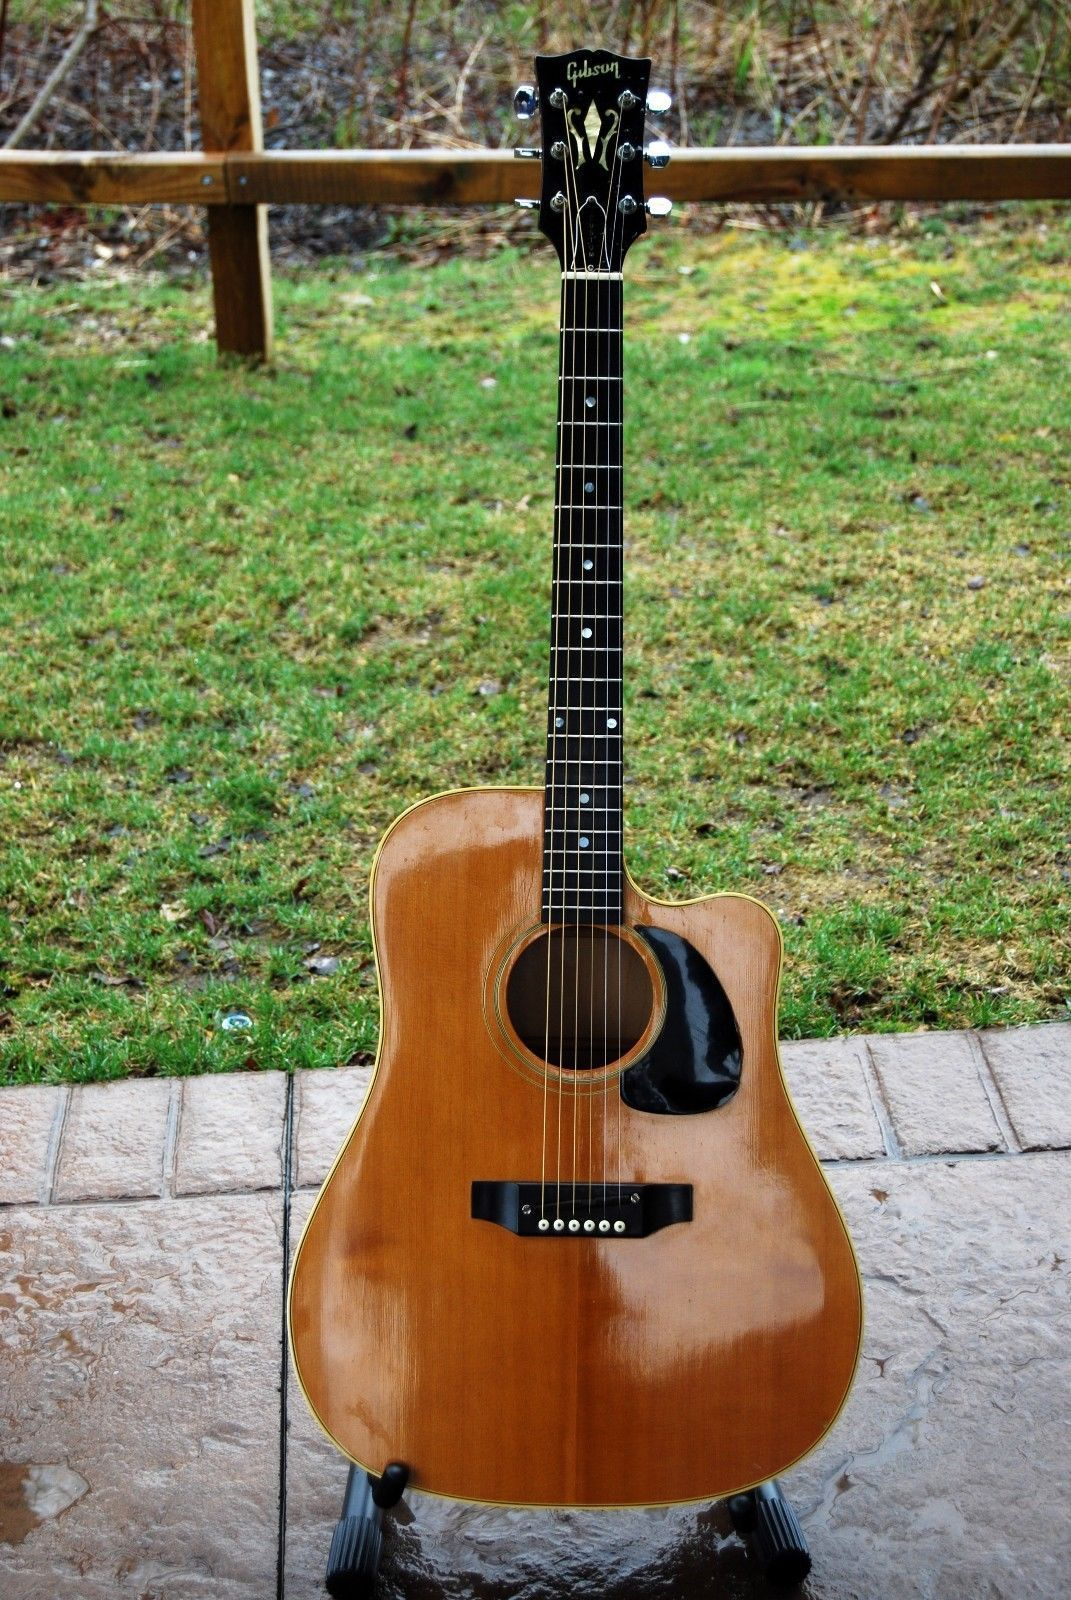 guitar 1968 gibson heritage acoustic guitar vintage with